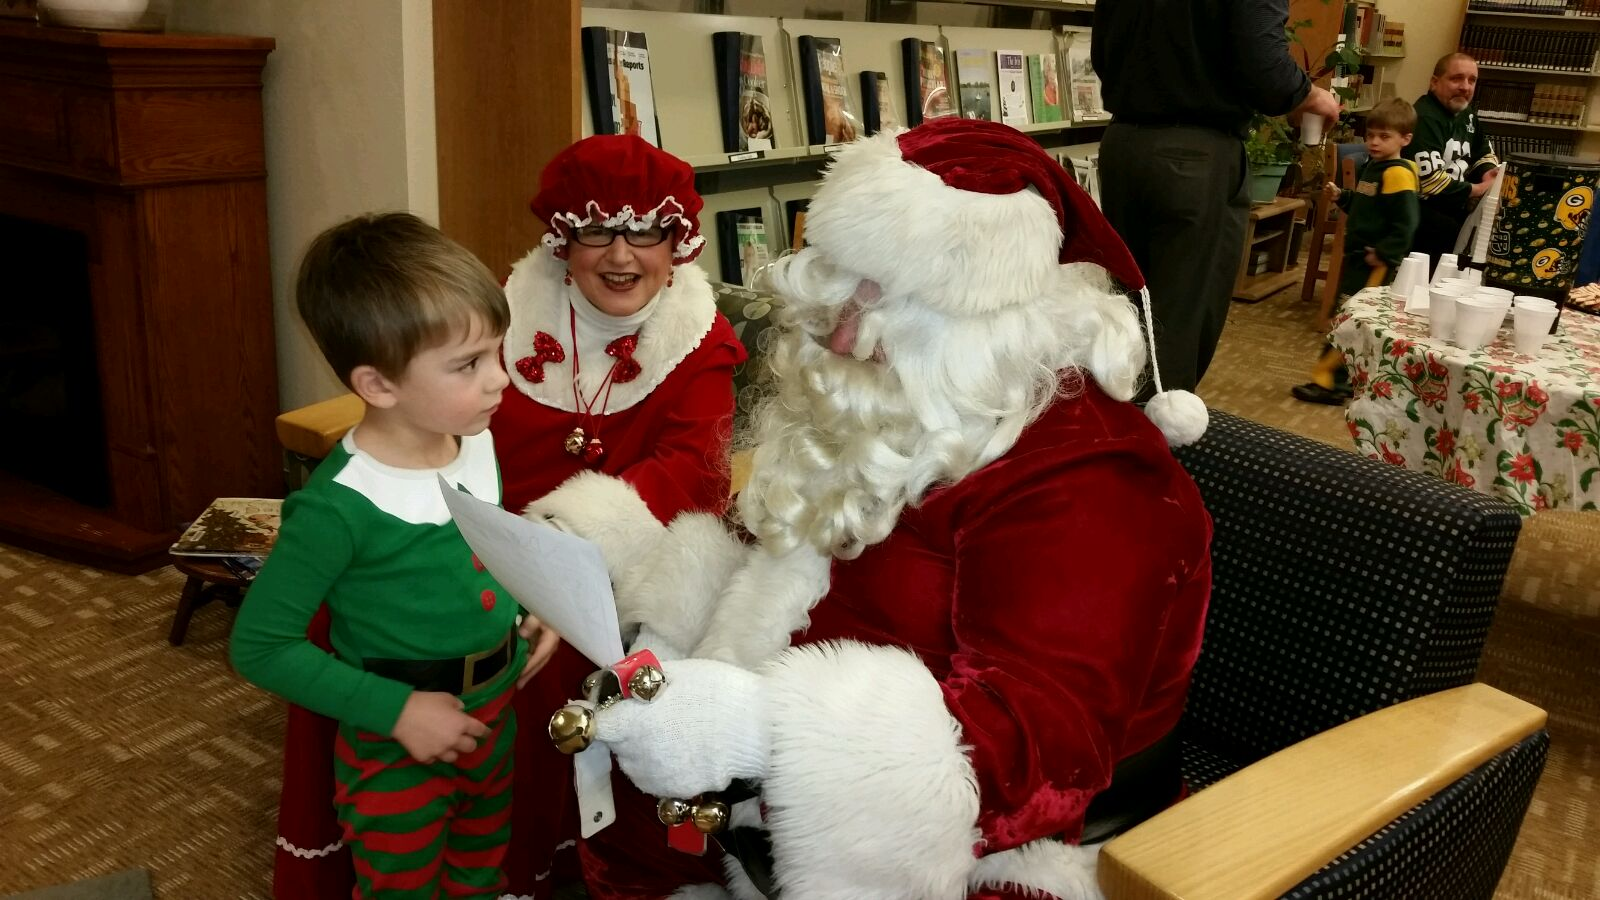 The children enjoyed having Mr. & Mrs. Claus at the library!